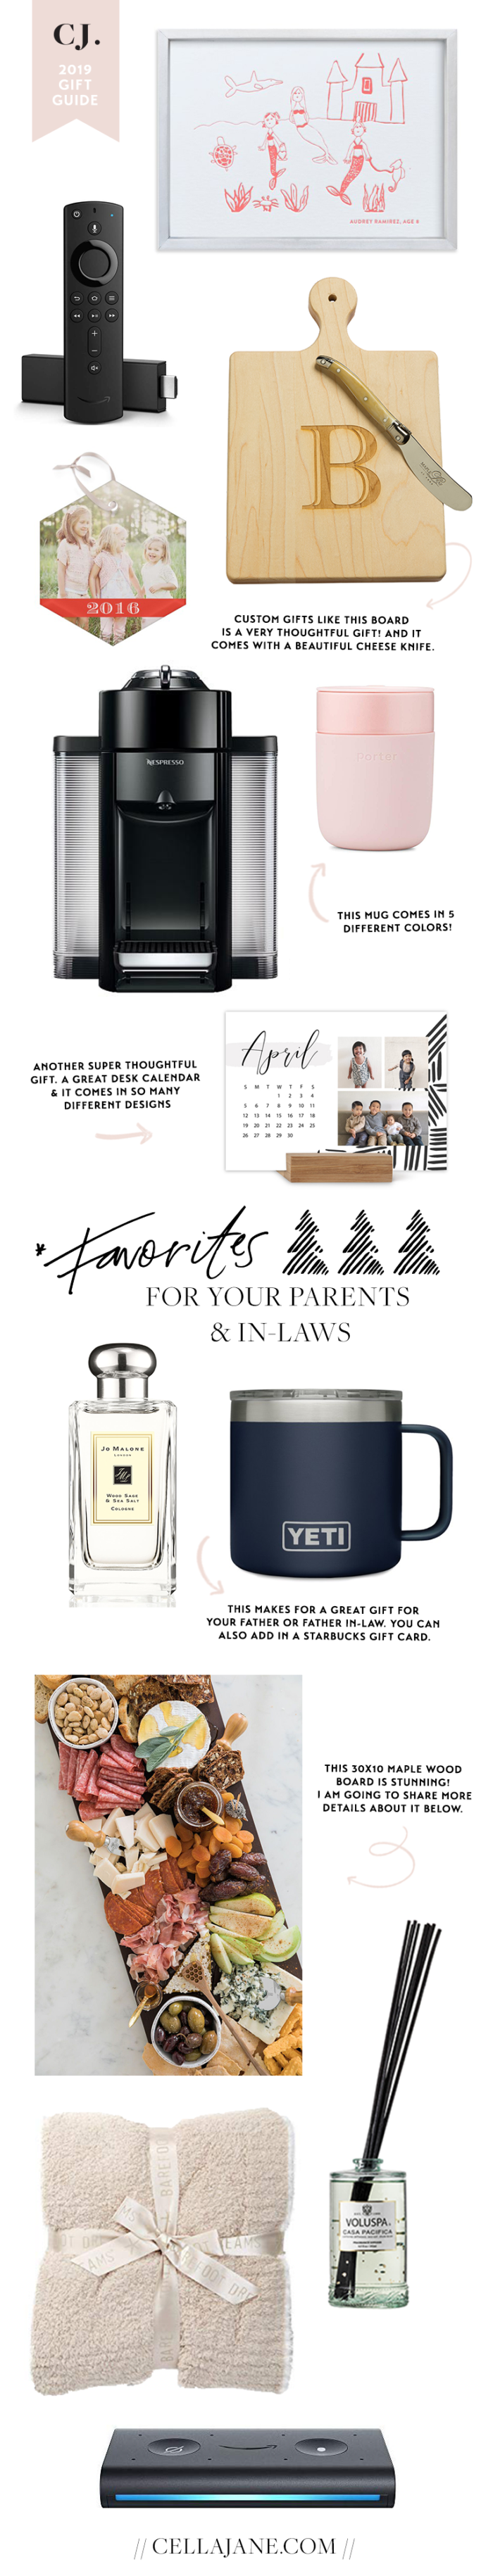 13 of the best gifts to give in laws in 2019